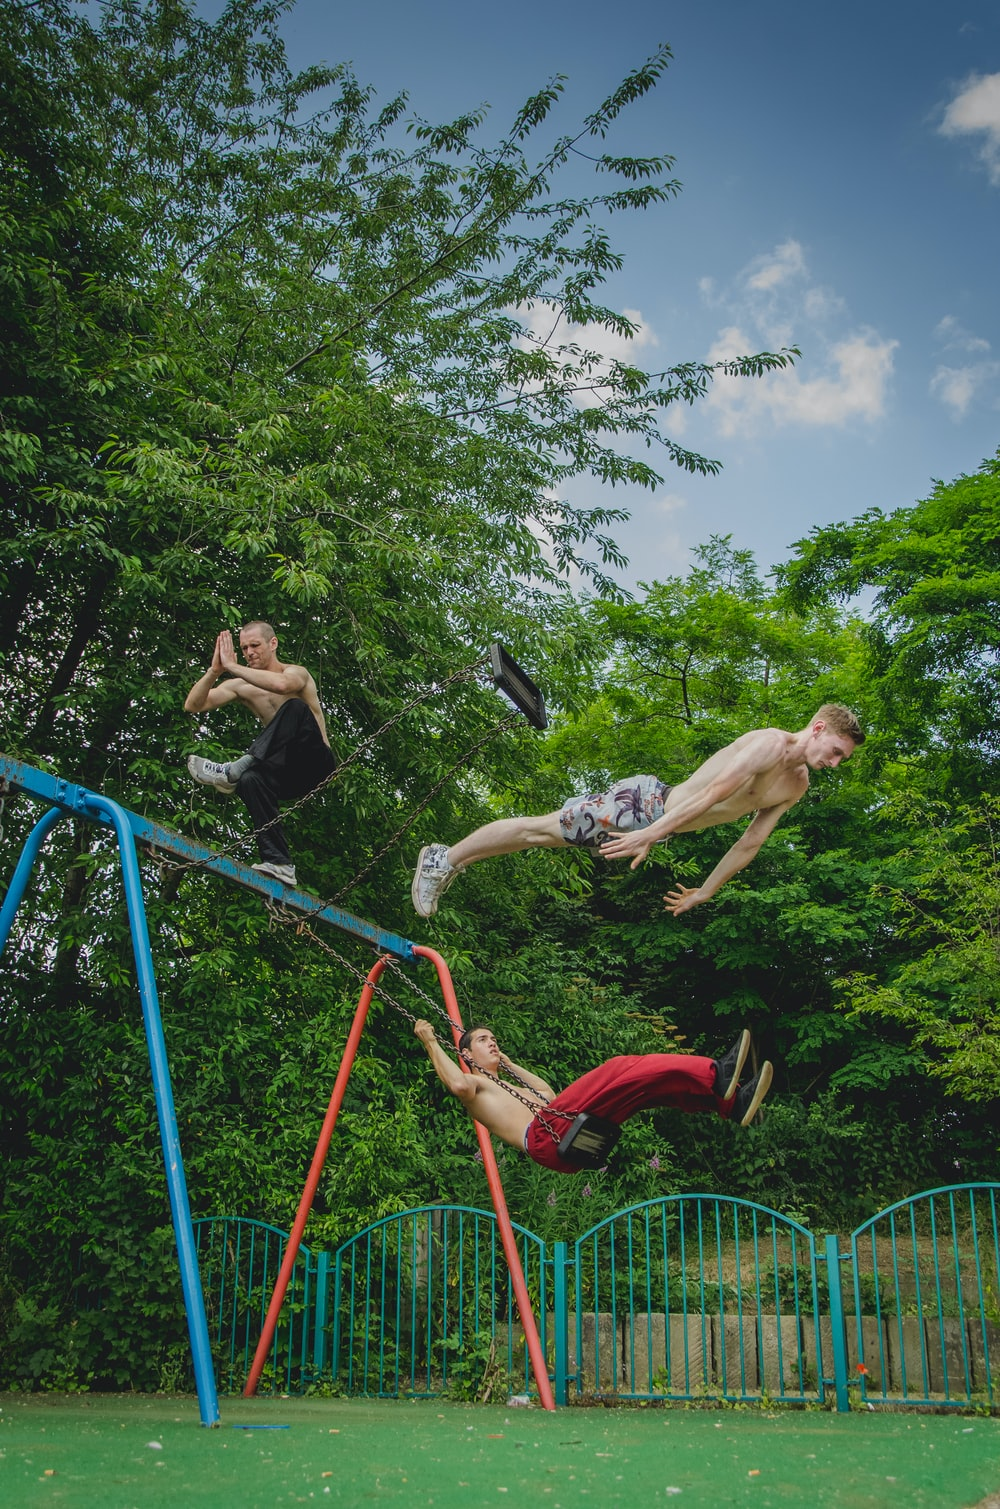 Older boys meditating and jumping off a swing set.